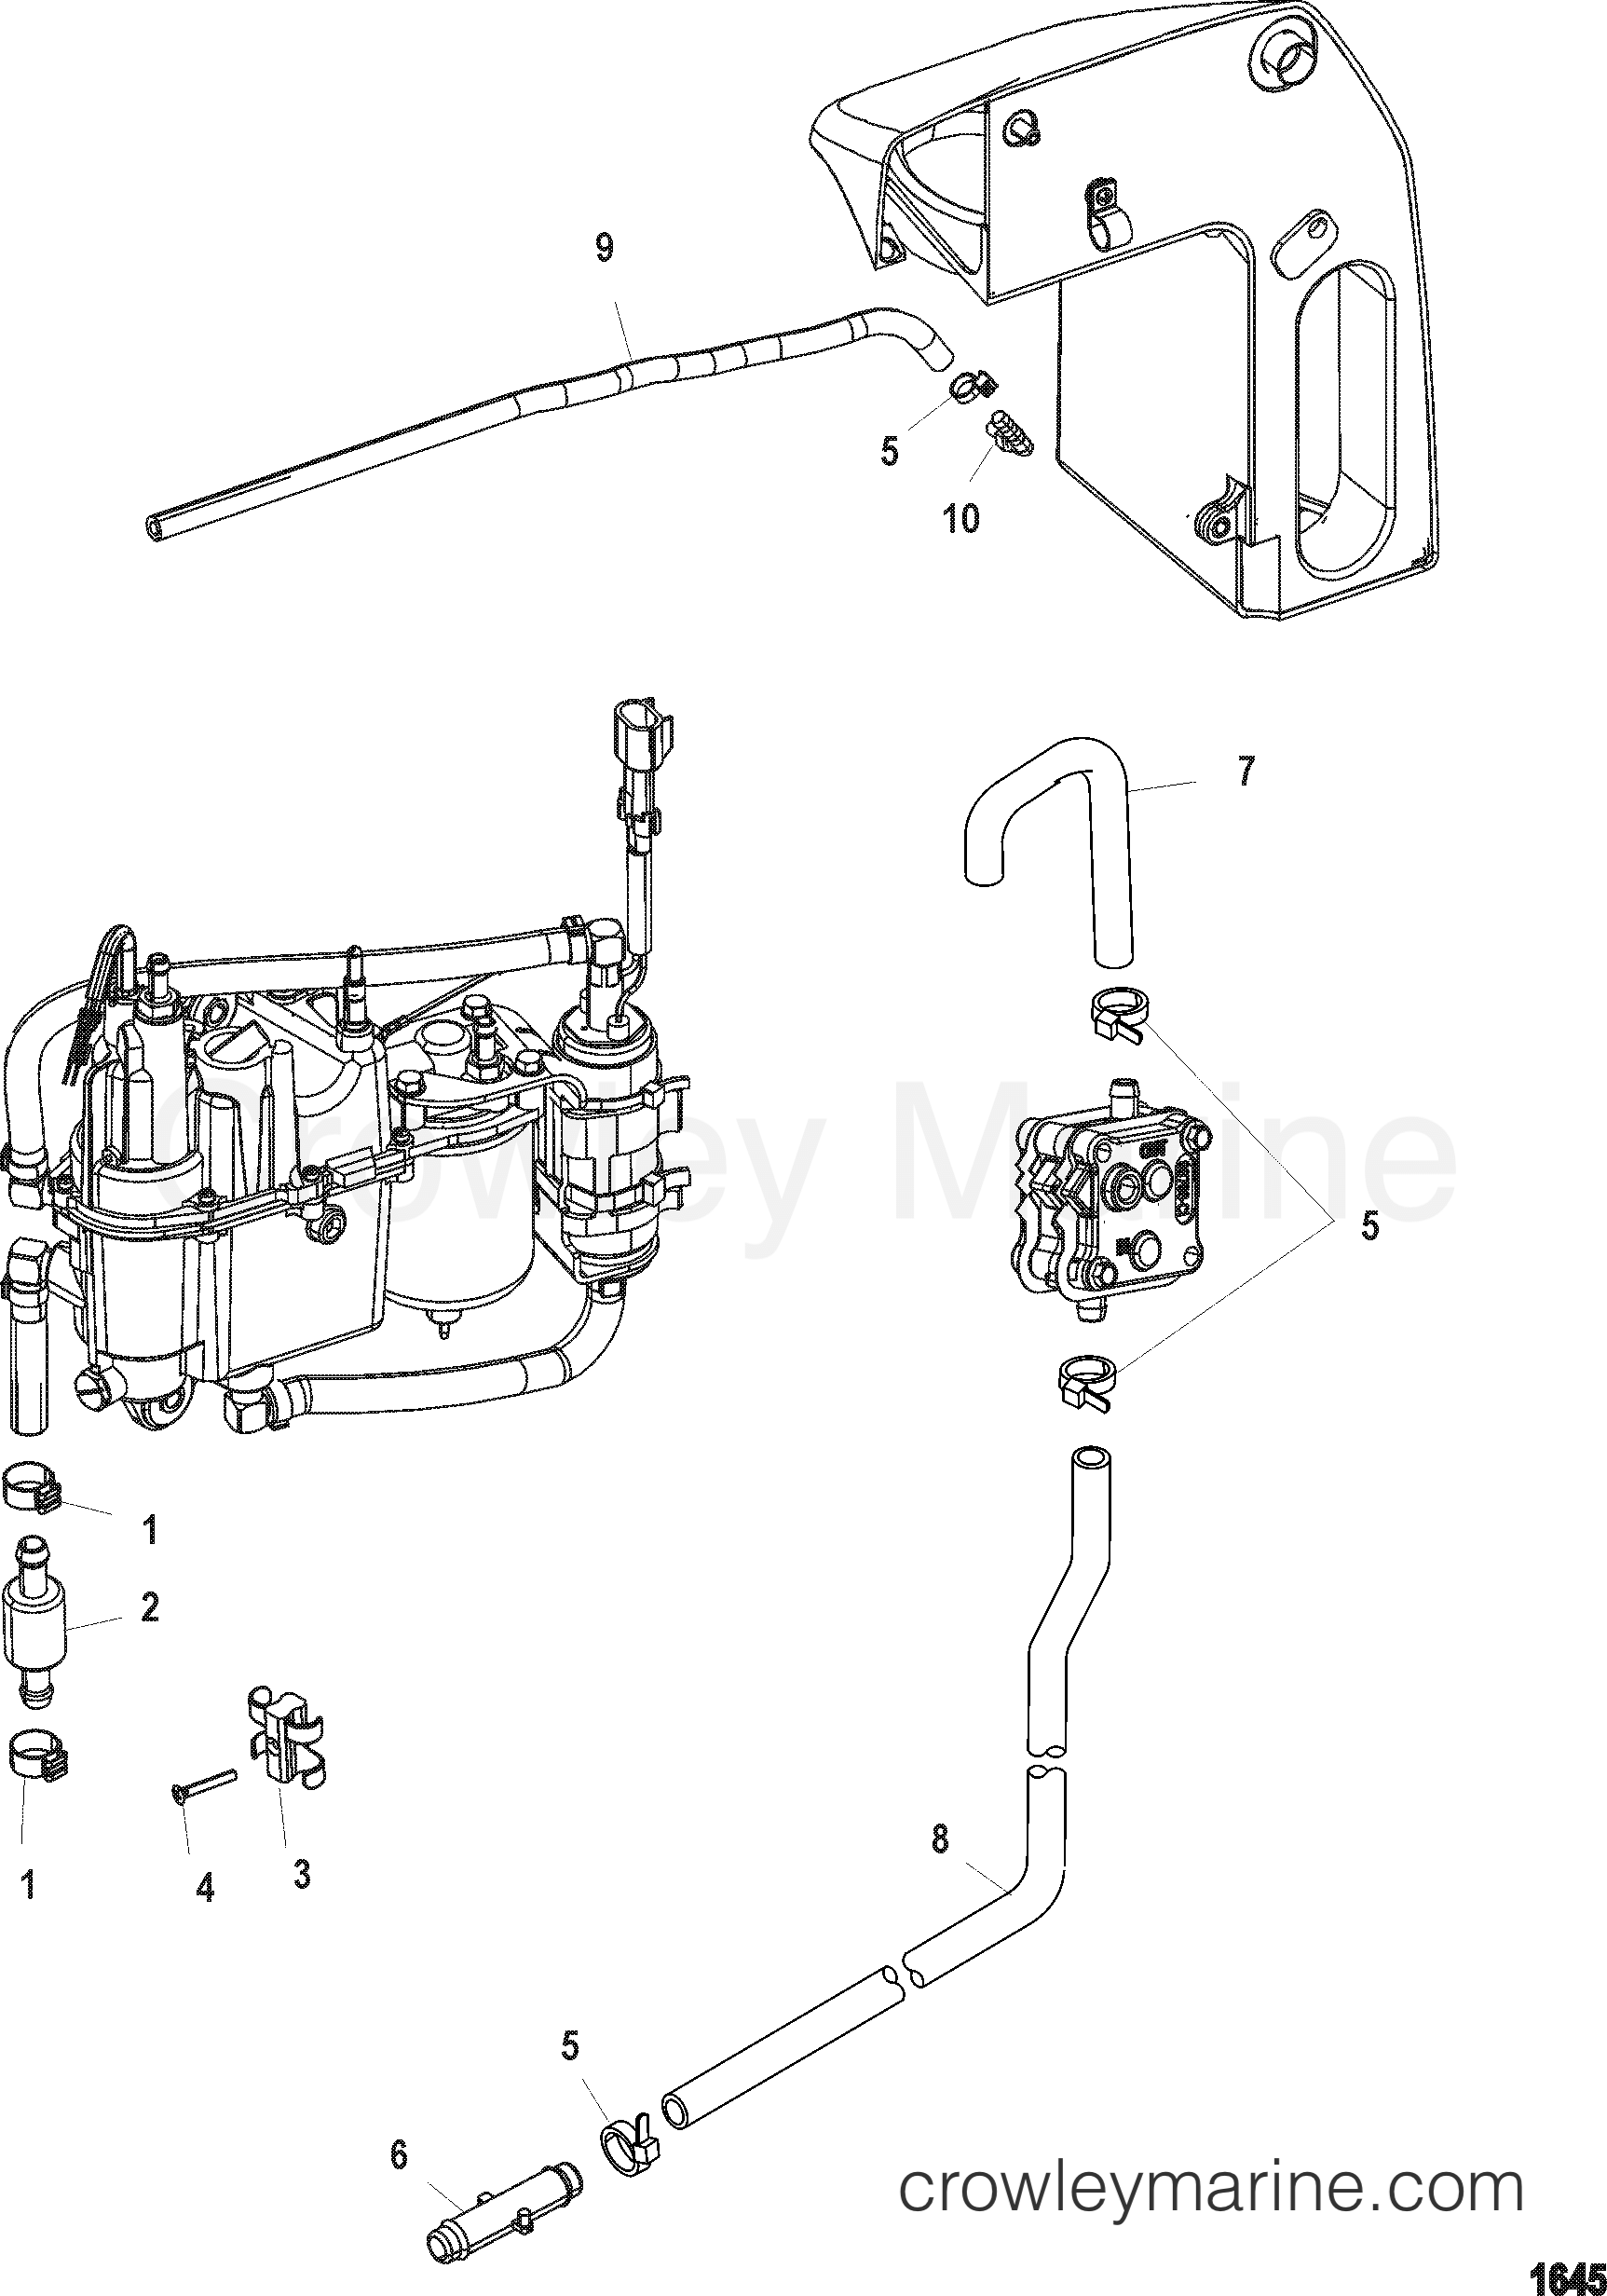 Evinrude 15 Hp Fuel Pump Diagram